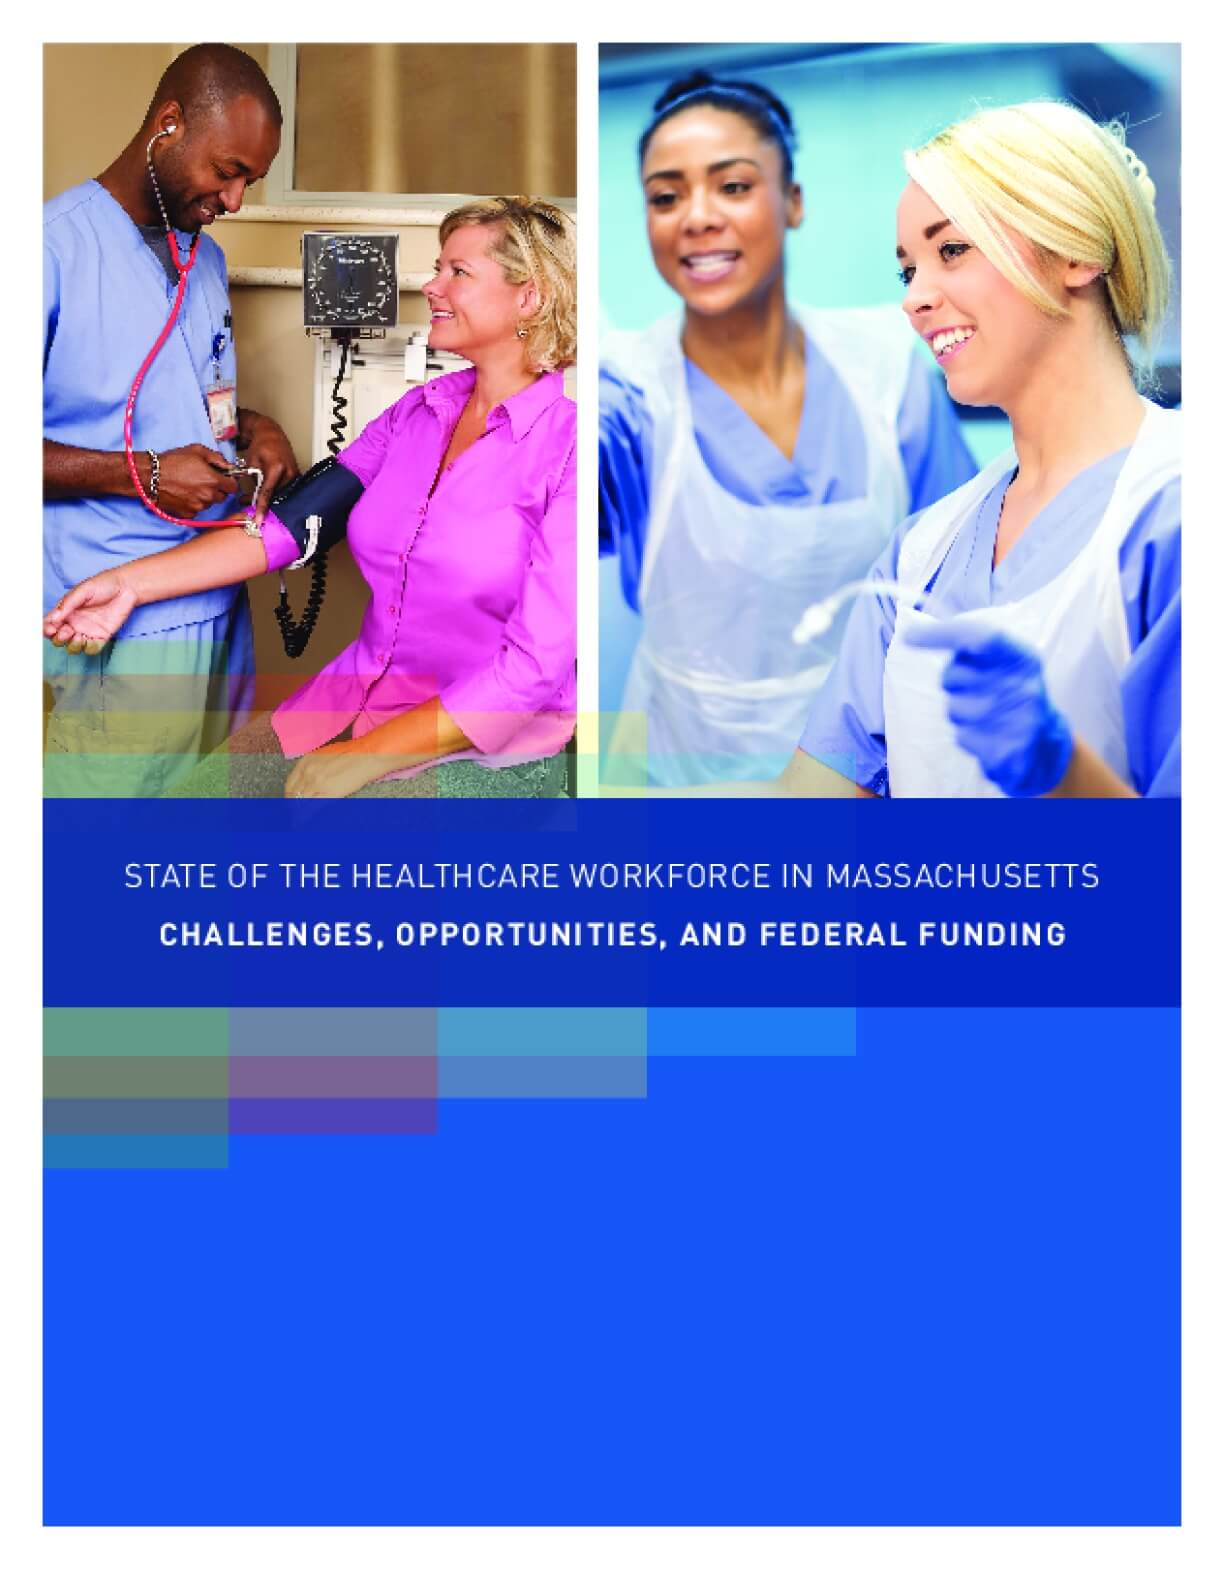 State of the Healthcare Workforce in Massachusetts: Challenges, Opportunities, and Federal Funding